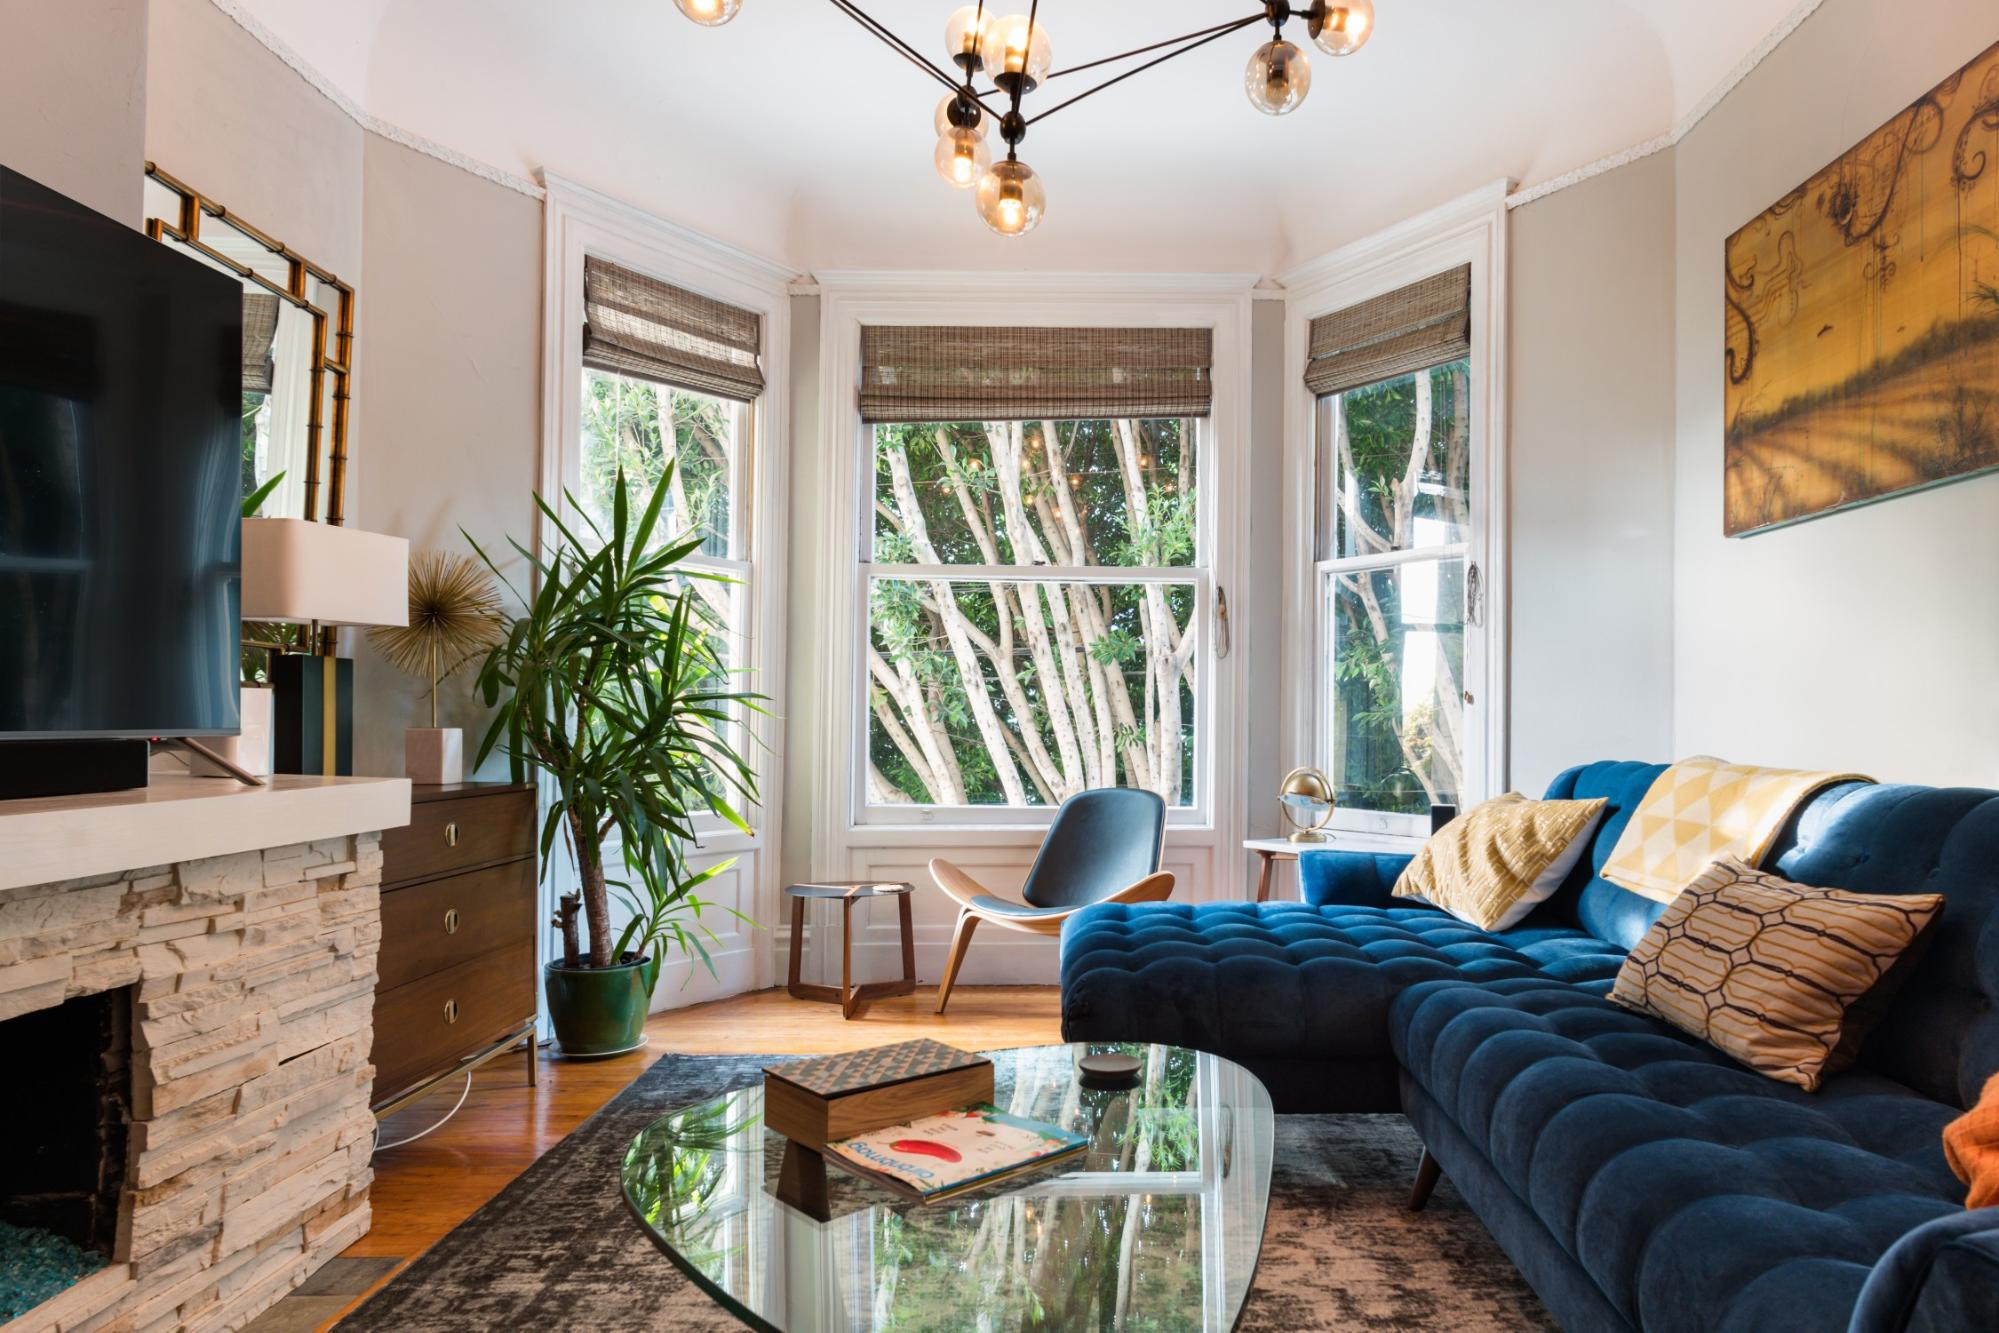 10 Luxurious Airbnbs in San Francisco That Are Worth the Splurge